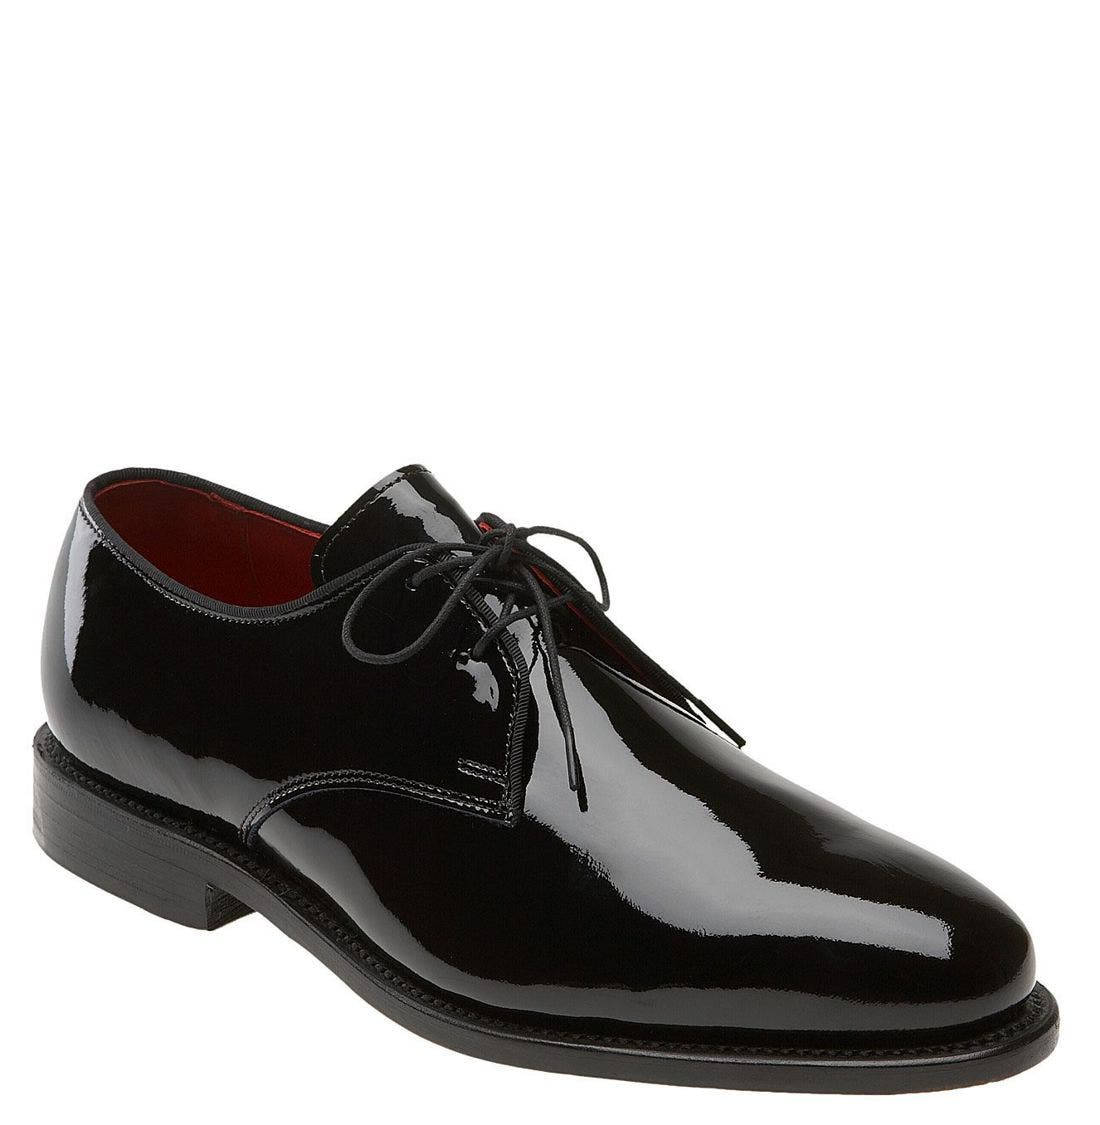 Main Image - Allen Edmonds 'Kendall' Oxford